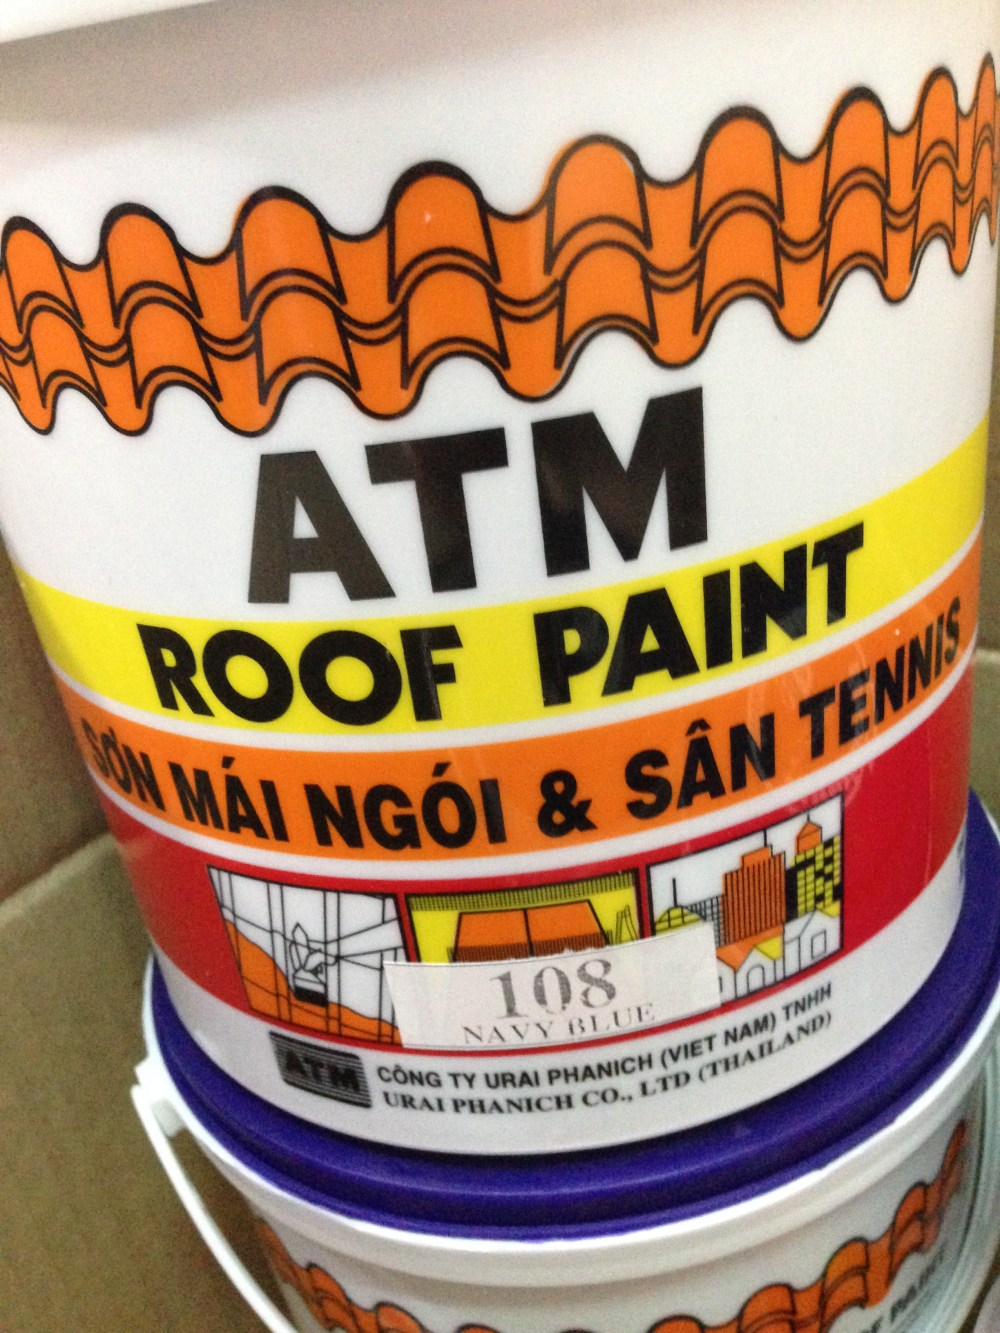 ATM roofpaint (4)